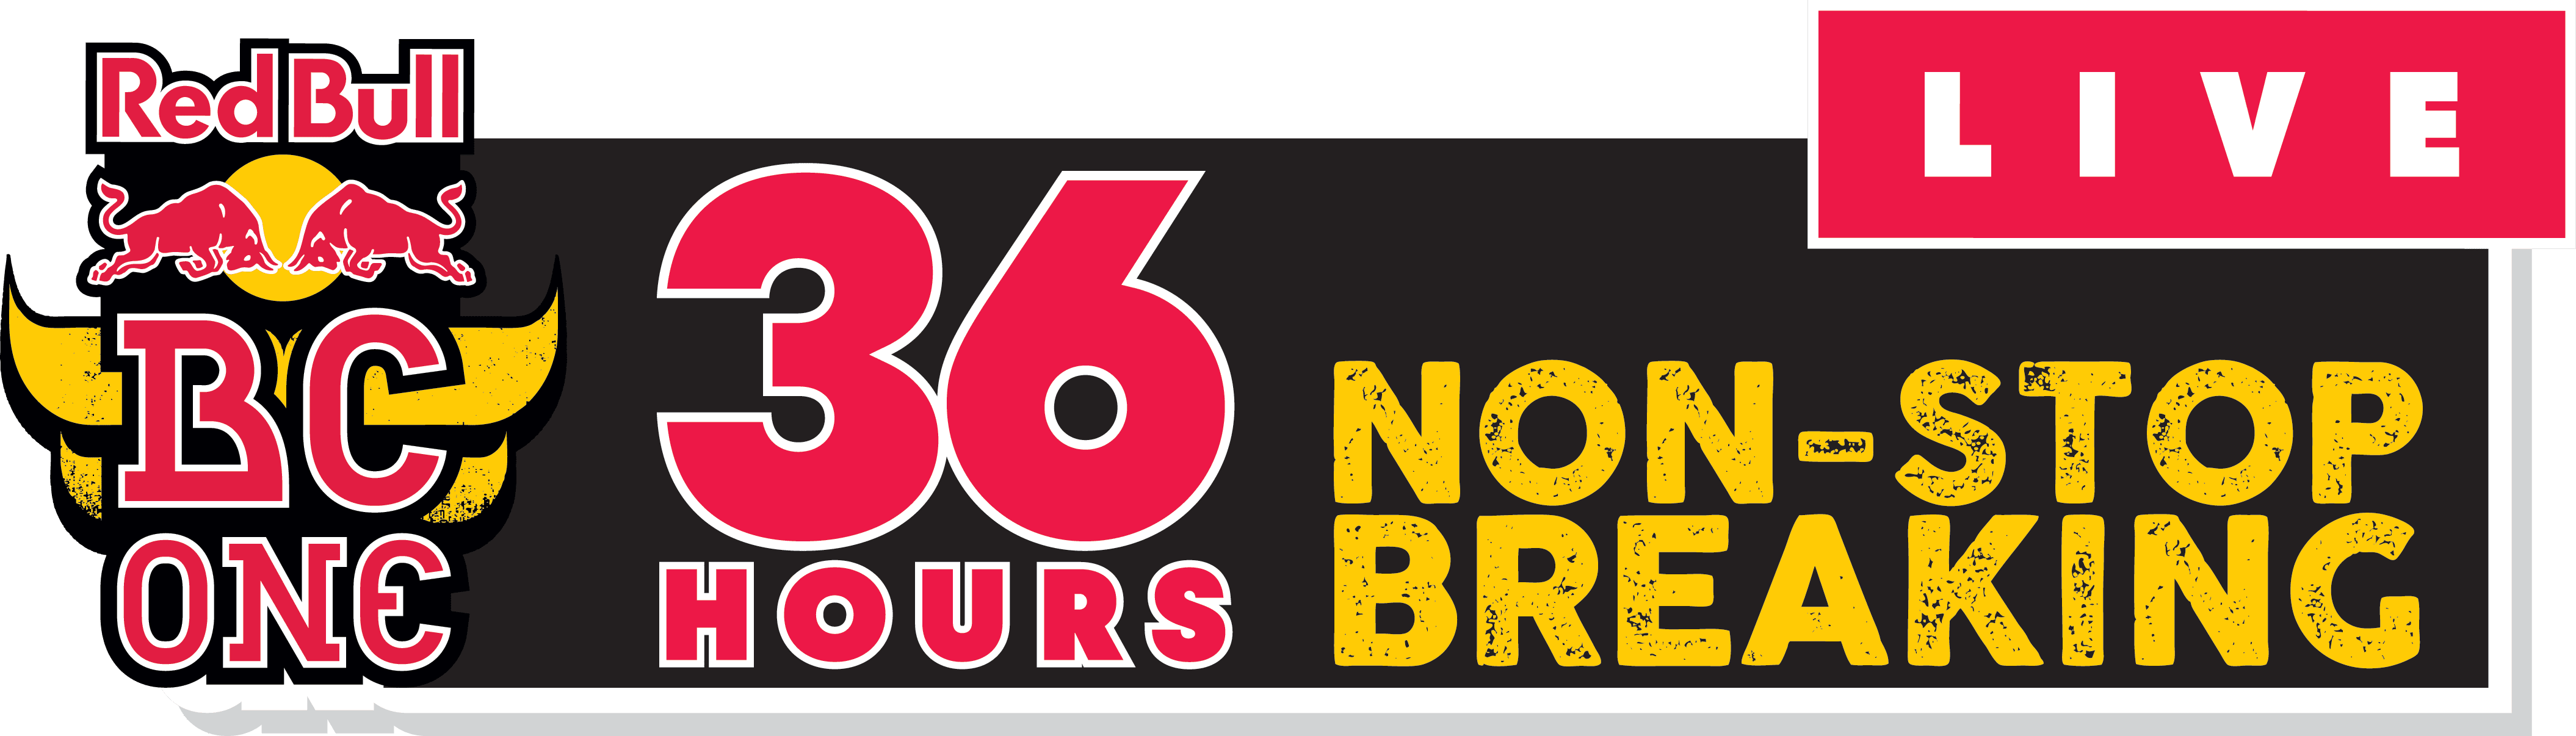 Image of the logo for Red Bull BC One's 36 hours of non-stop breaking.